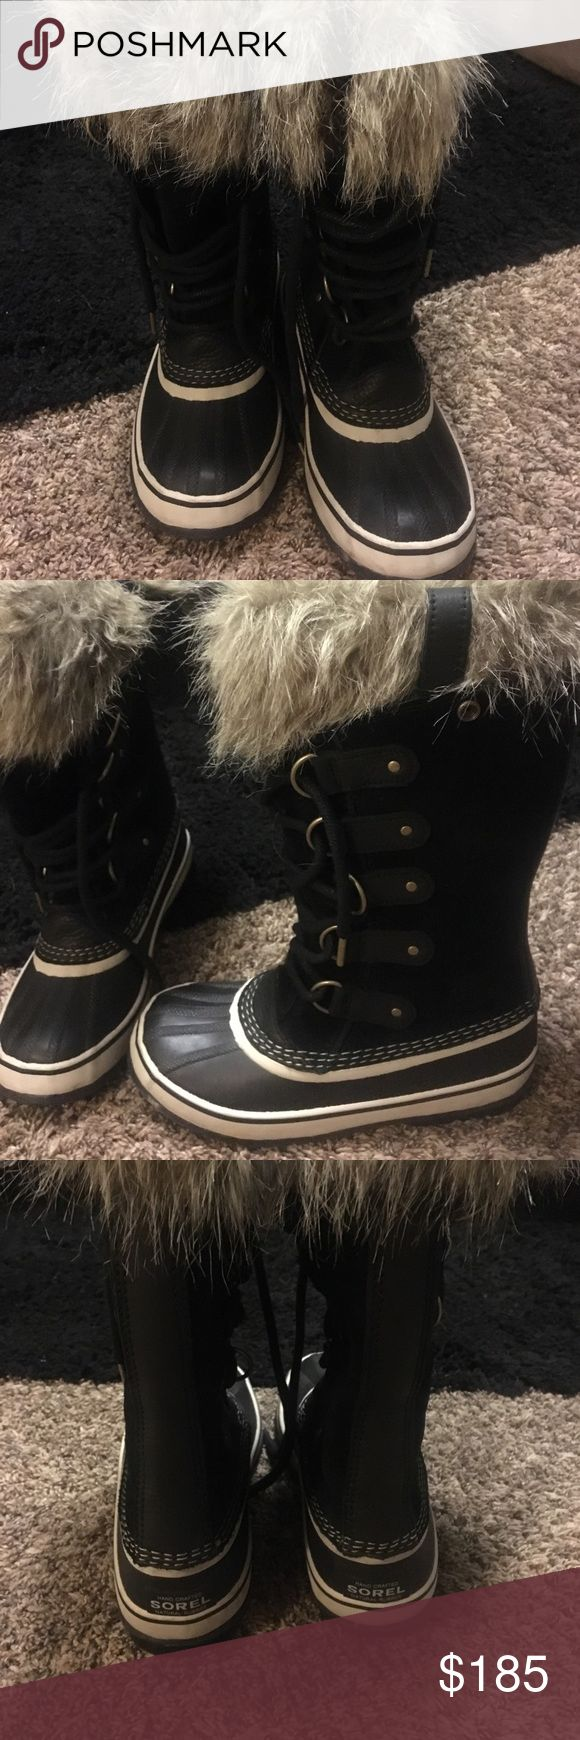 Sorel winter boots Perfect condition worn once but realized they were a little too big and I need to buy a kid size! True to size 6! Let me know if you have any questions or would like more pictures! Sorel Shoes Winter & Rain Boots